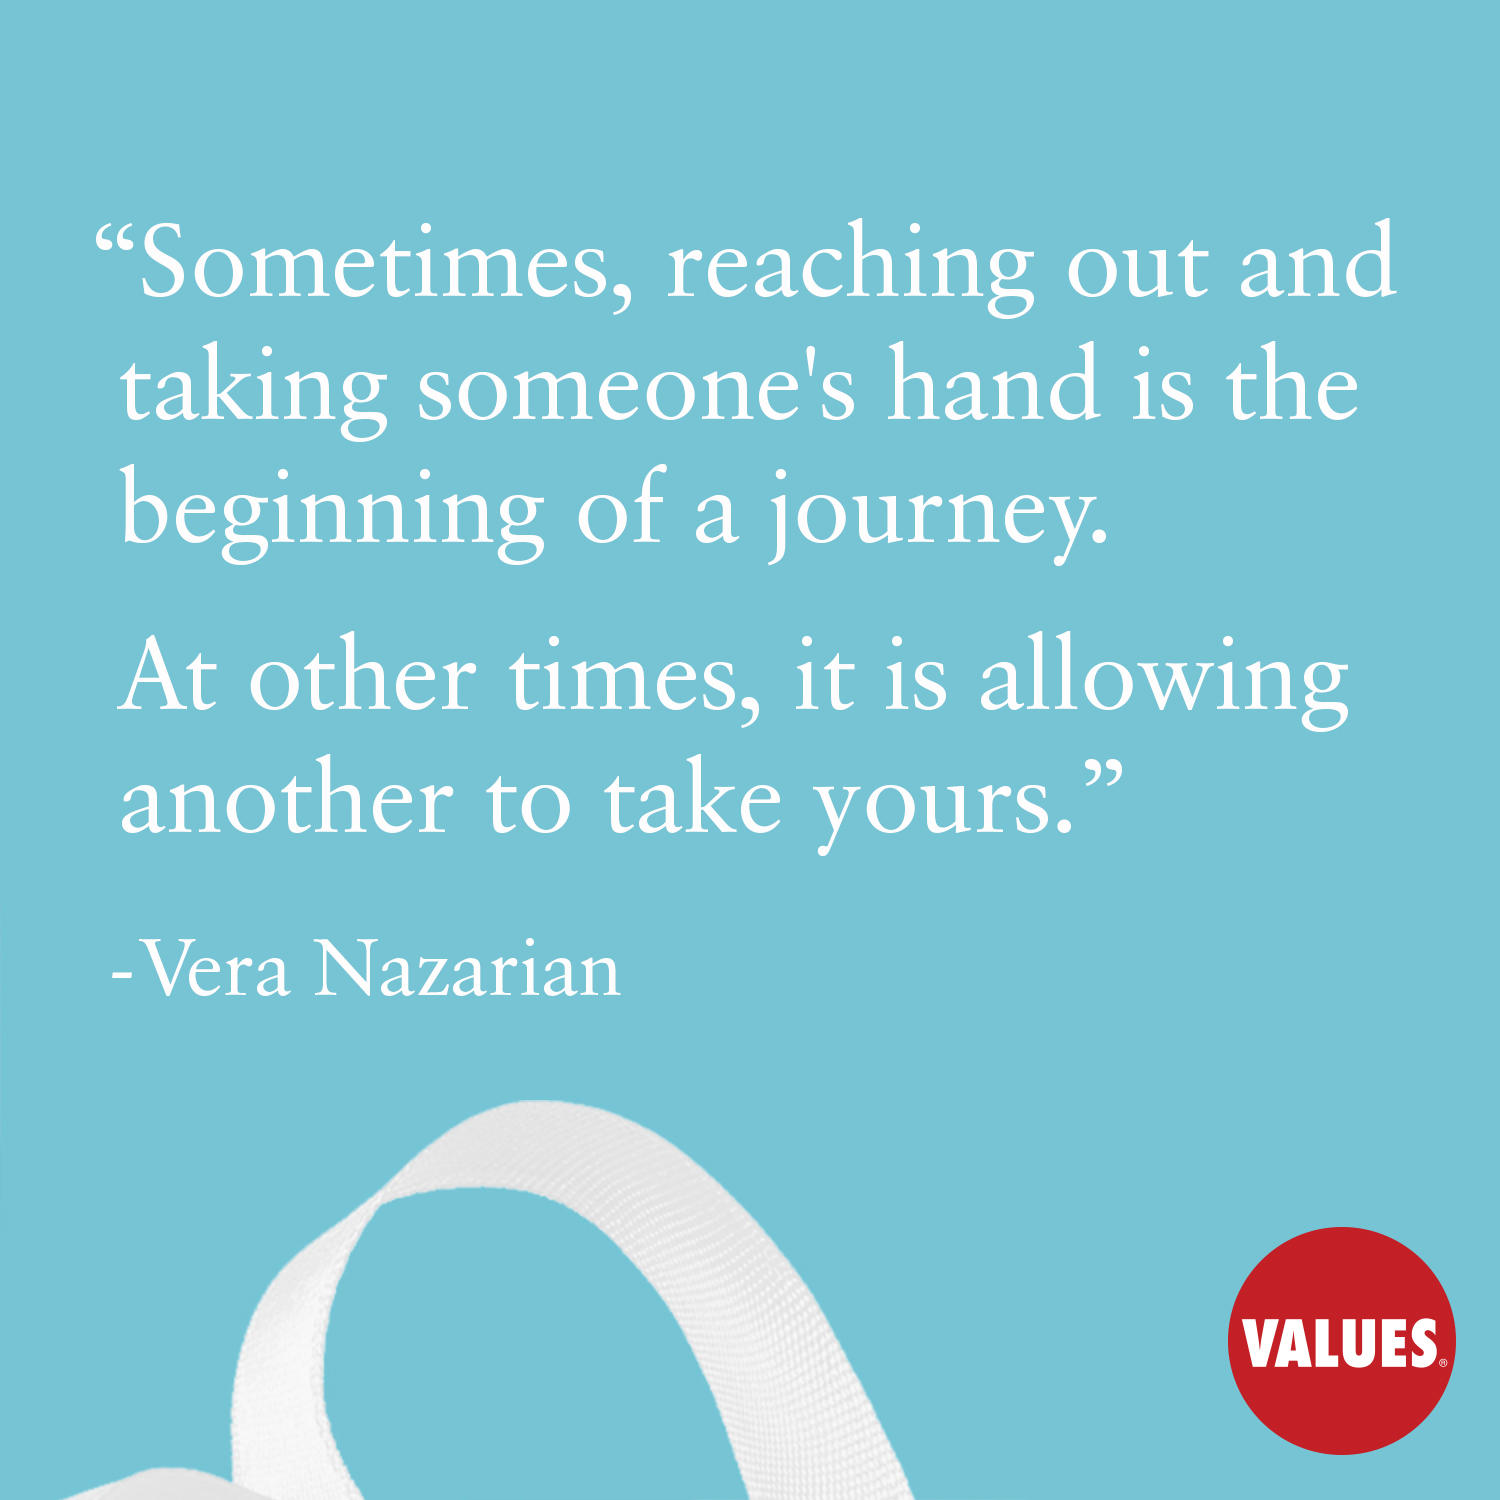 Sometimes, reaching out and taking someone's hand is the beginning of a journey. At other times, it is allowing another to take yours. —Vera Nazarian